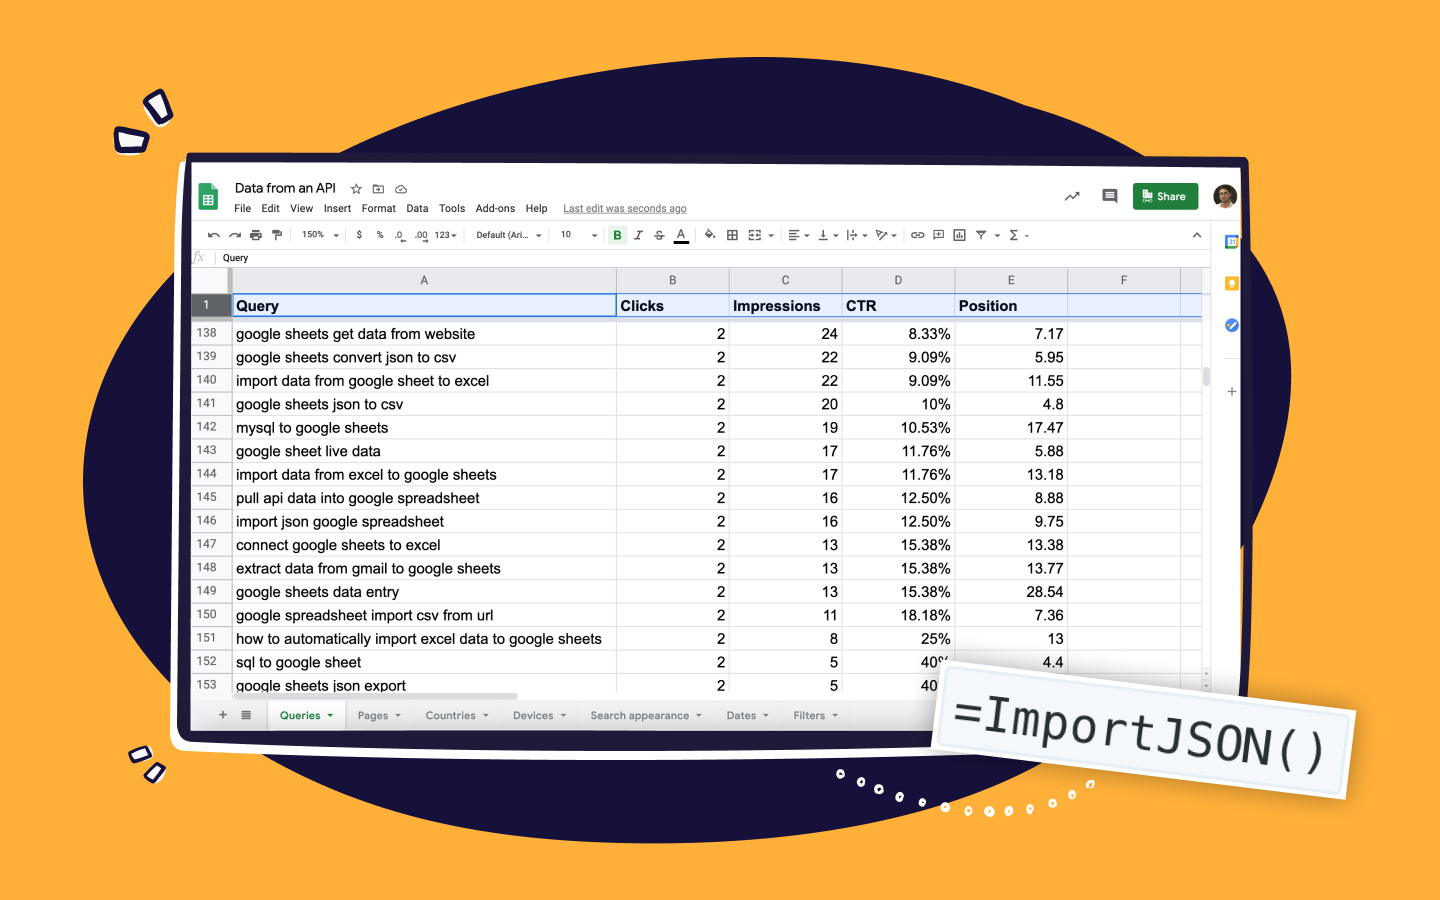 How to import JSON data to a Google Sheet